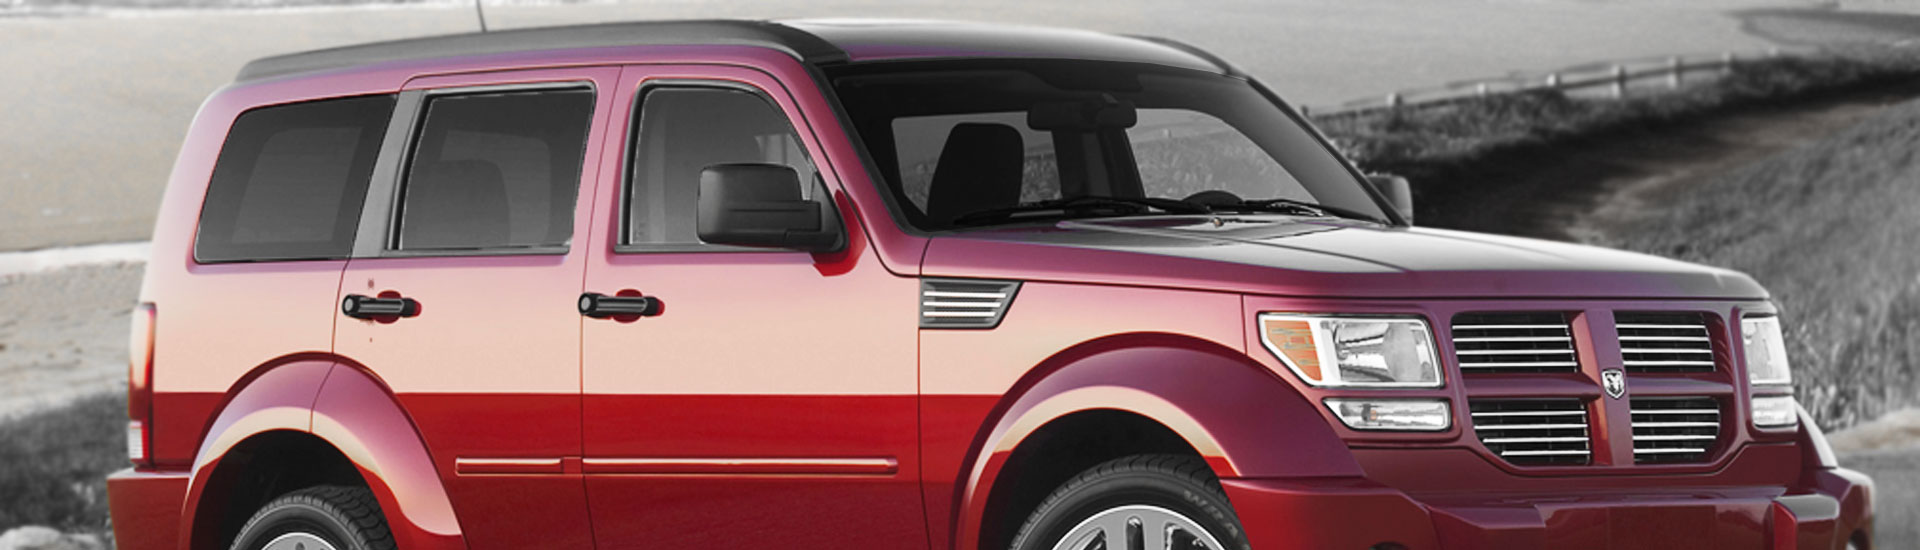 Dodge Nitro Window Tint